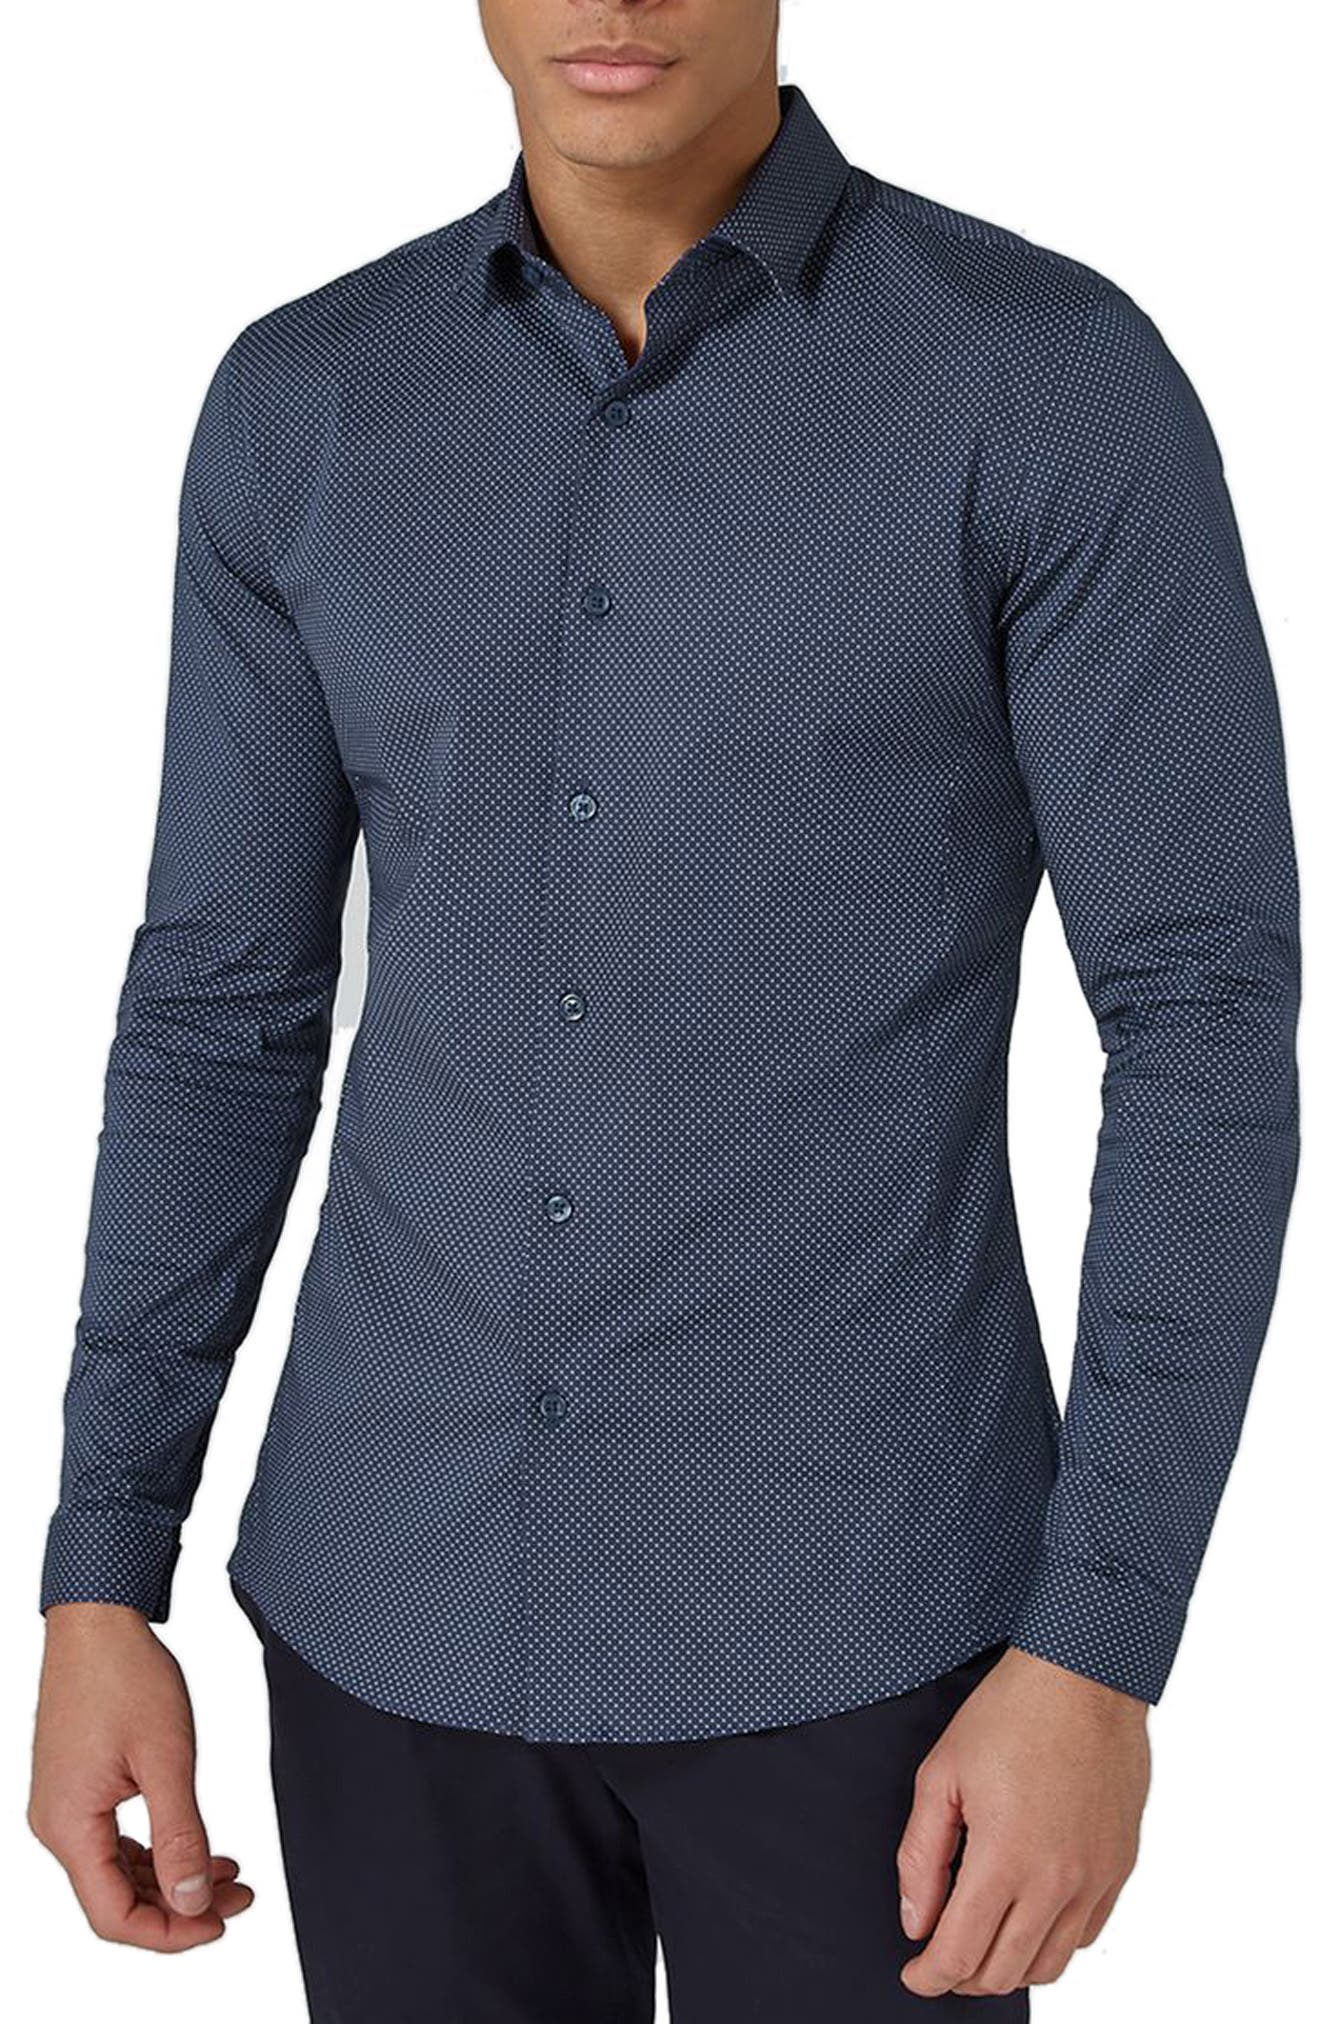 Polka Dot Stretch Smart Shirt,                             Main thumbnail 1, color,                             410